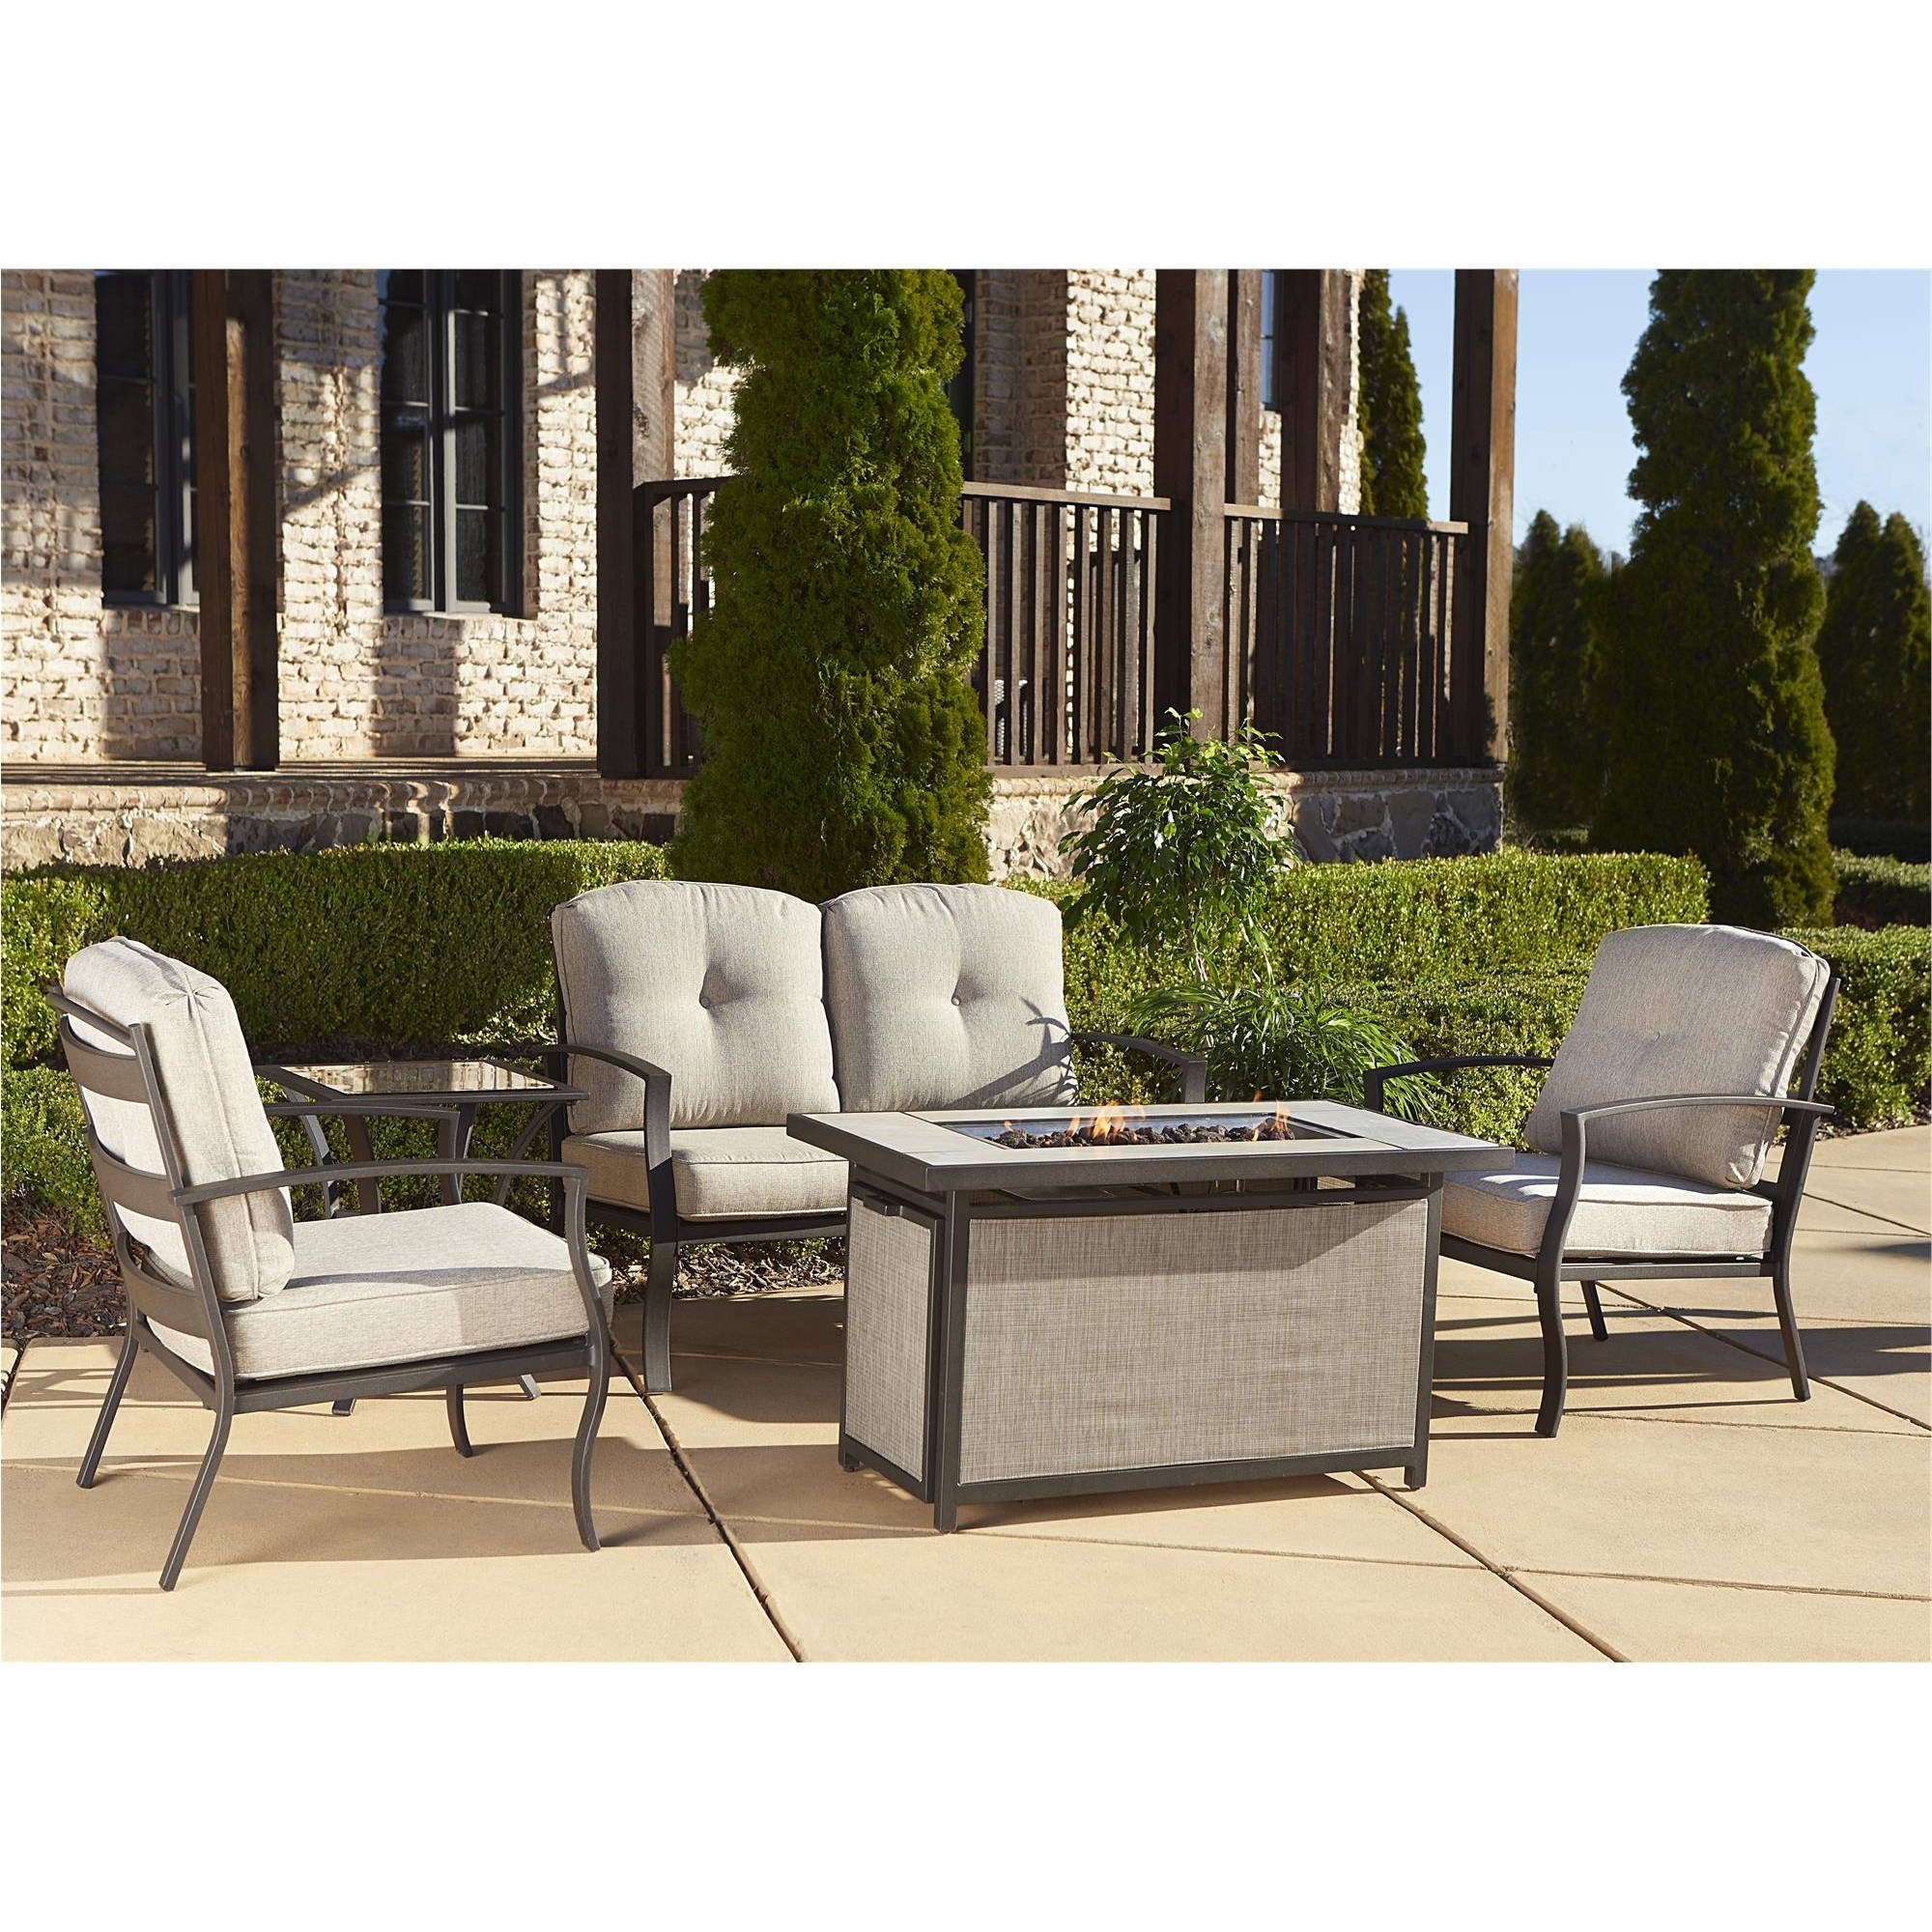 Well Liked Cosco Outdoor 5 Piece Serene Ridge Aluminum Patio Furniture Regarding Aluminum Patio Conversation Sets (View 19 of 20)